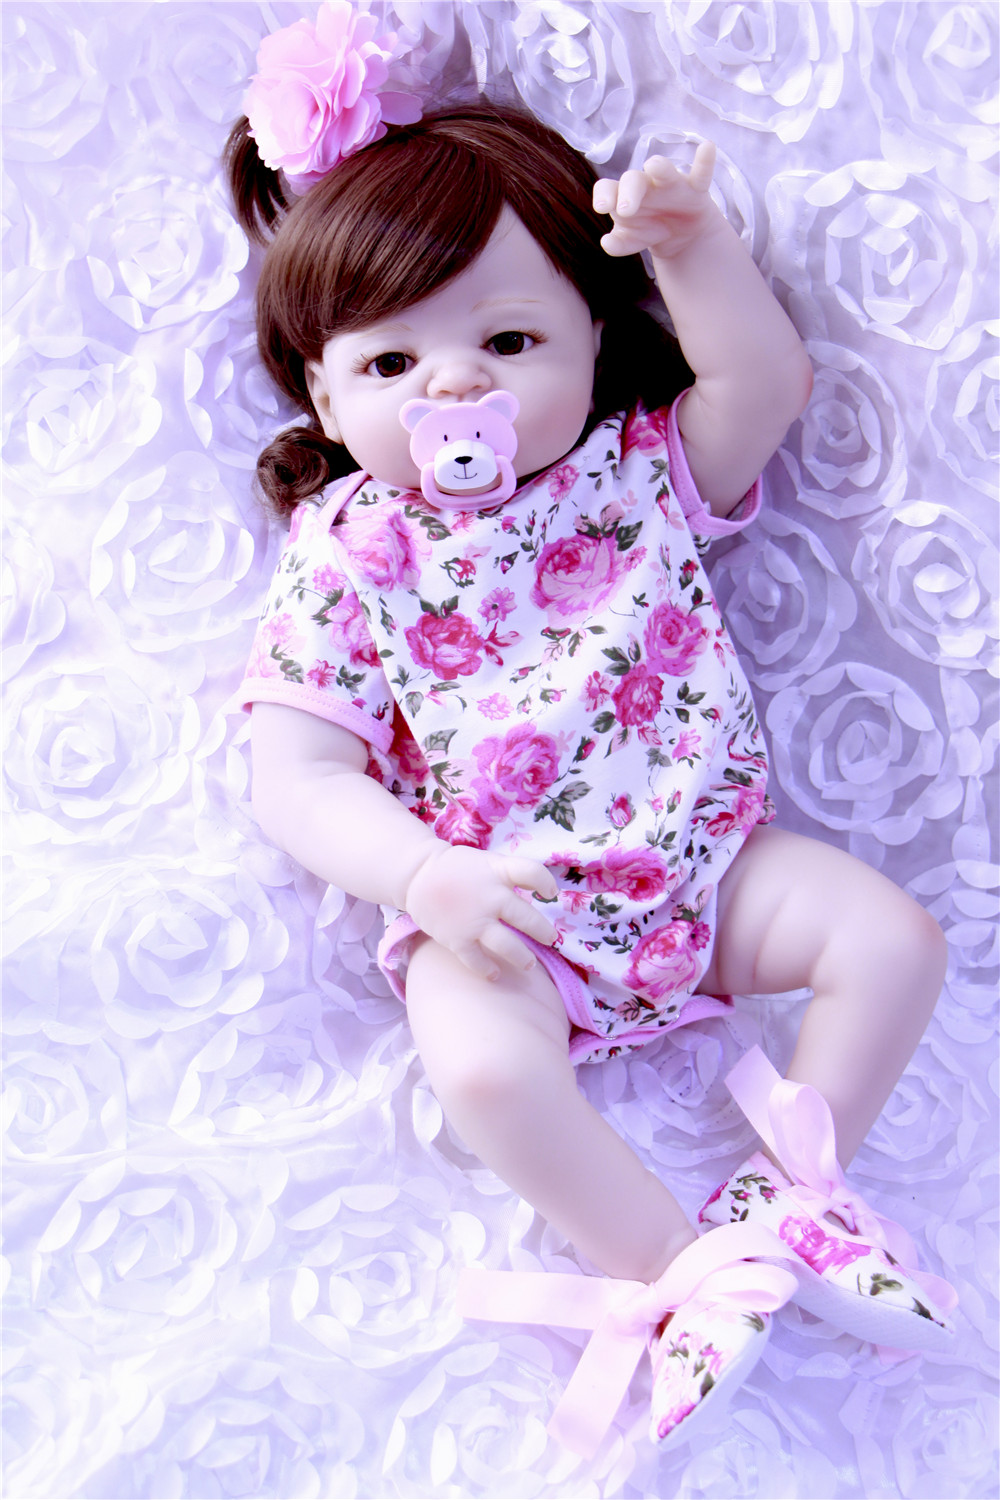 dollmai 55cm Full Body Silicone Reborn Baby Doll Curly girl Newbron Lifelike Baby-Reborn Princess Doll Birthday Christmas Giftdollmai 55cm Full Body Silicone Reborn Baby Doll Curly girl Newbron Lifelike Baby-Reborn Princess Doll Birthday Christmas Gift